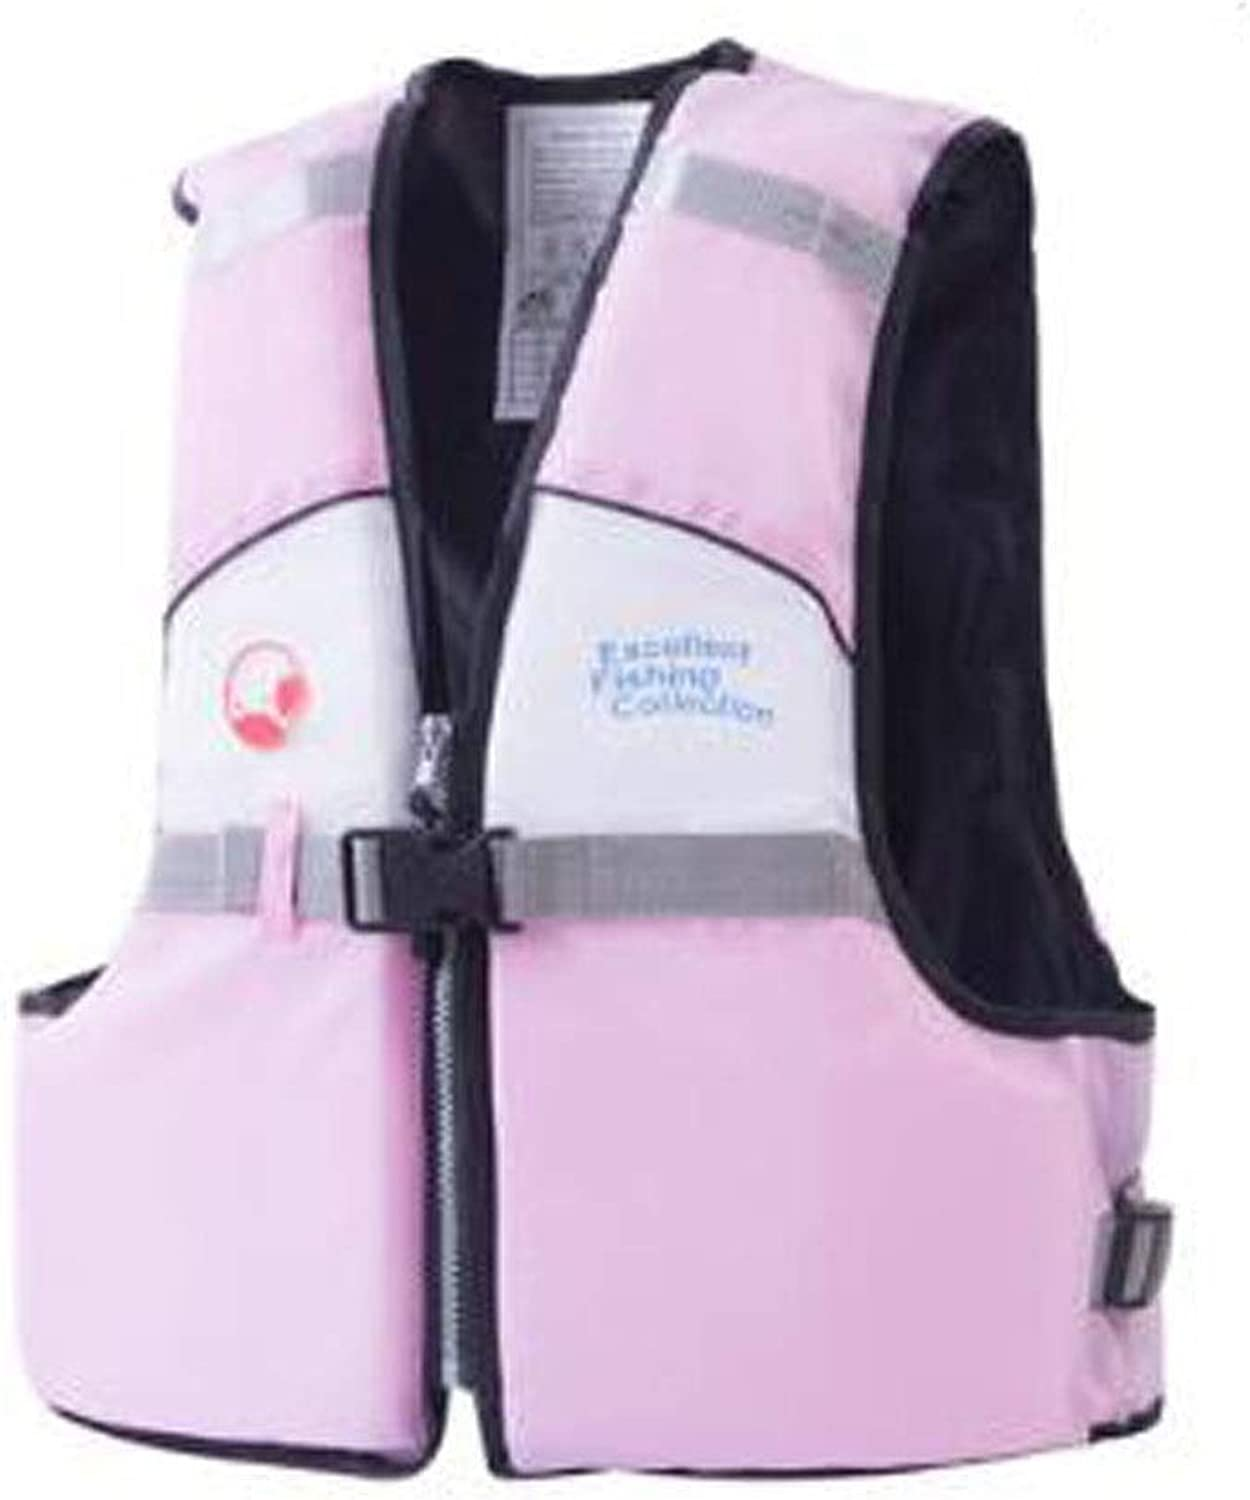 Jielongtongxun Life Jacket, Comfortable Fishing Essential, Oxford Cloth Quality Material, Suitable for Snorkeling, Outdoor Play, Surfing, Easy to Carry (Size  M, S, color  Pink) Simple and Beautiful